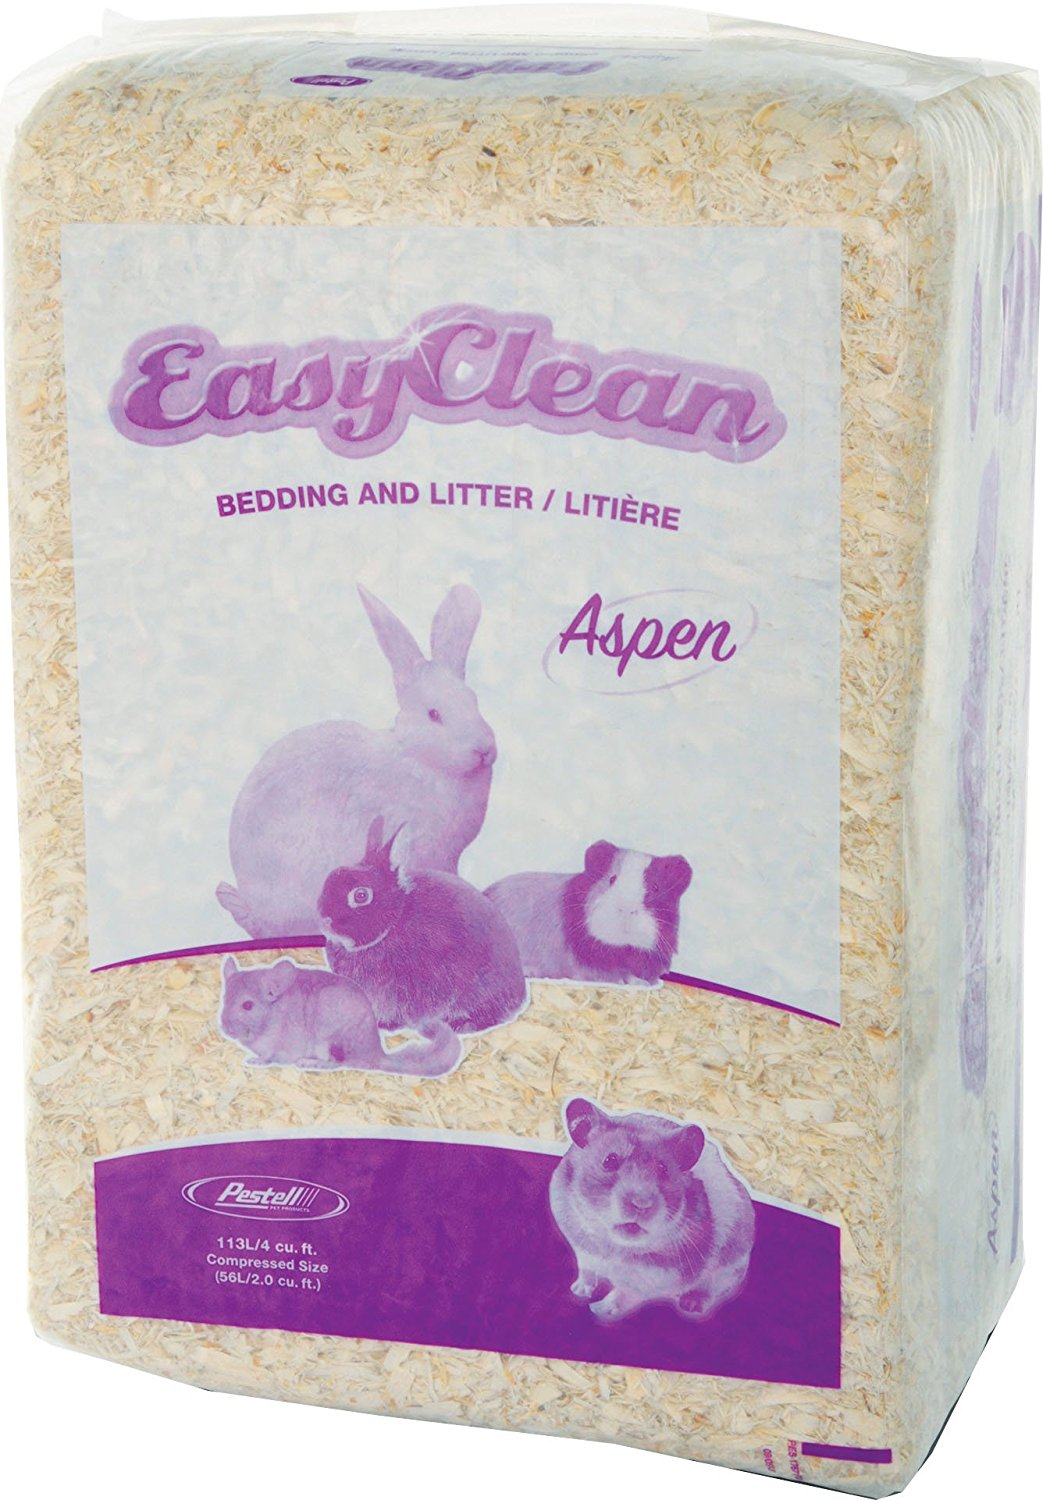 easy clean aspen bedding 113 liters all natural bedding by pestell pet products